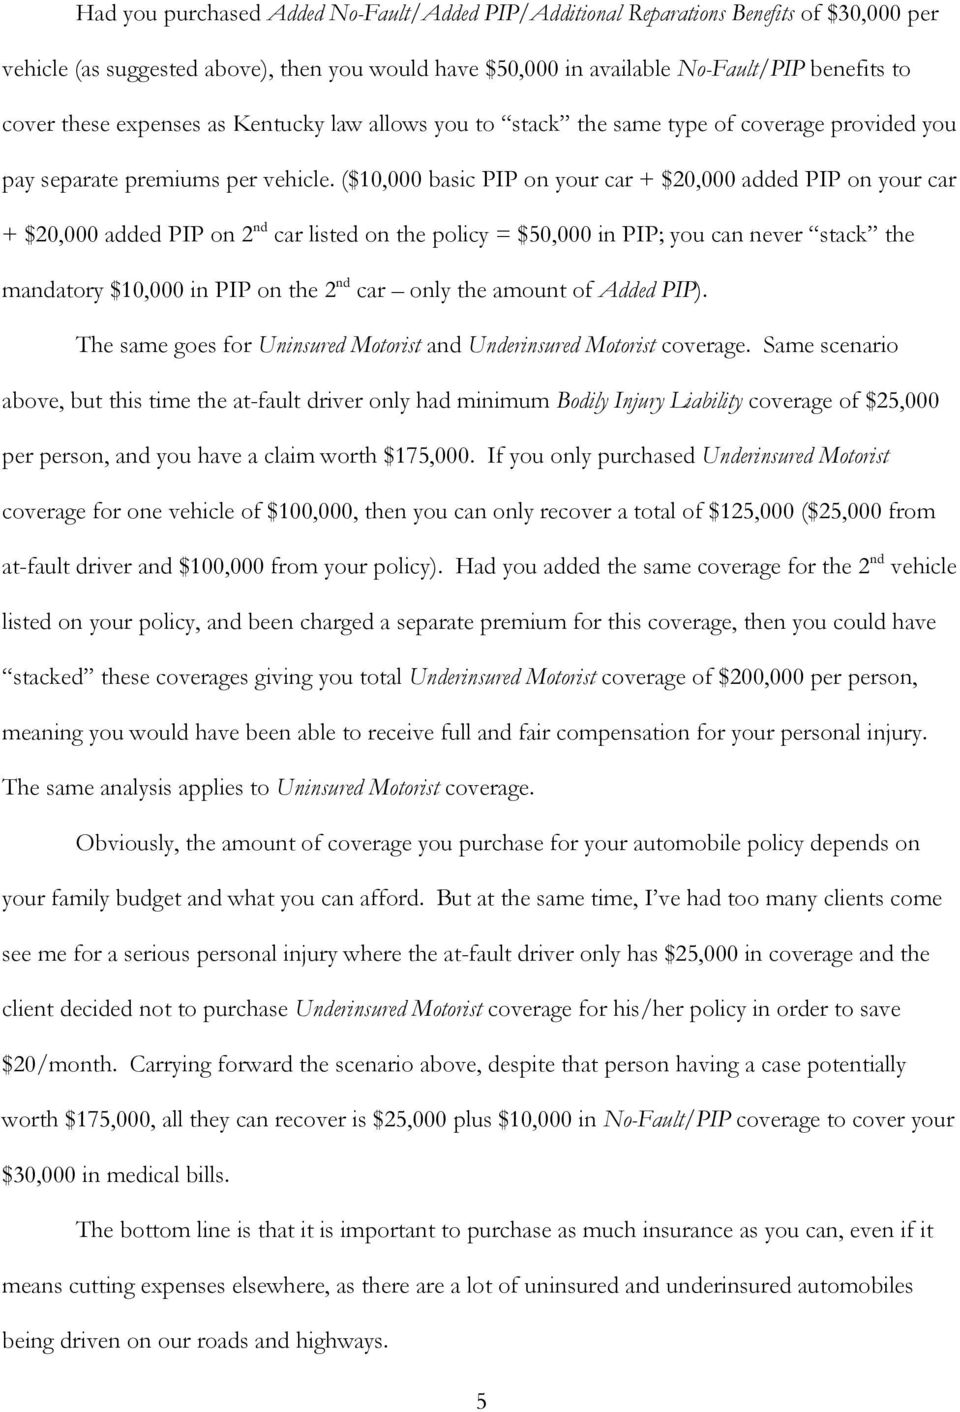 ($10,000 basic PIP on your car + $20,000 added PIP on your car + $20,000 added PIP on 2 nd car listed on the policy = $50,000 in PIP; you can never stack the mandatory $10,000 in PIP on the 2 nd car